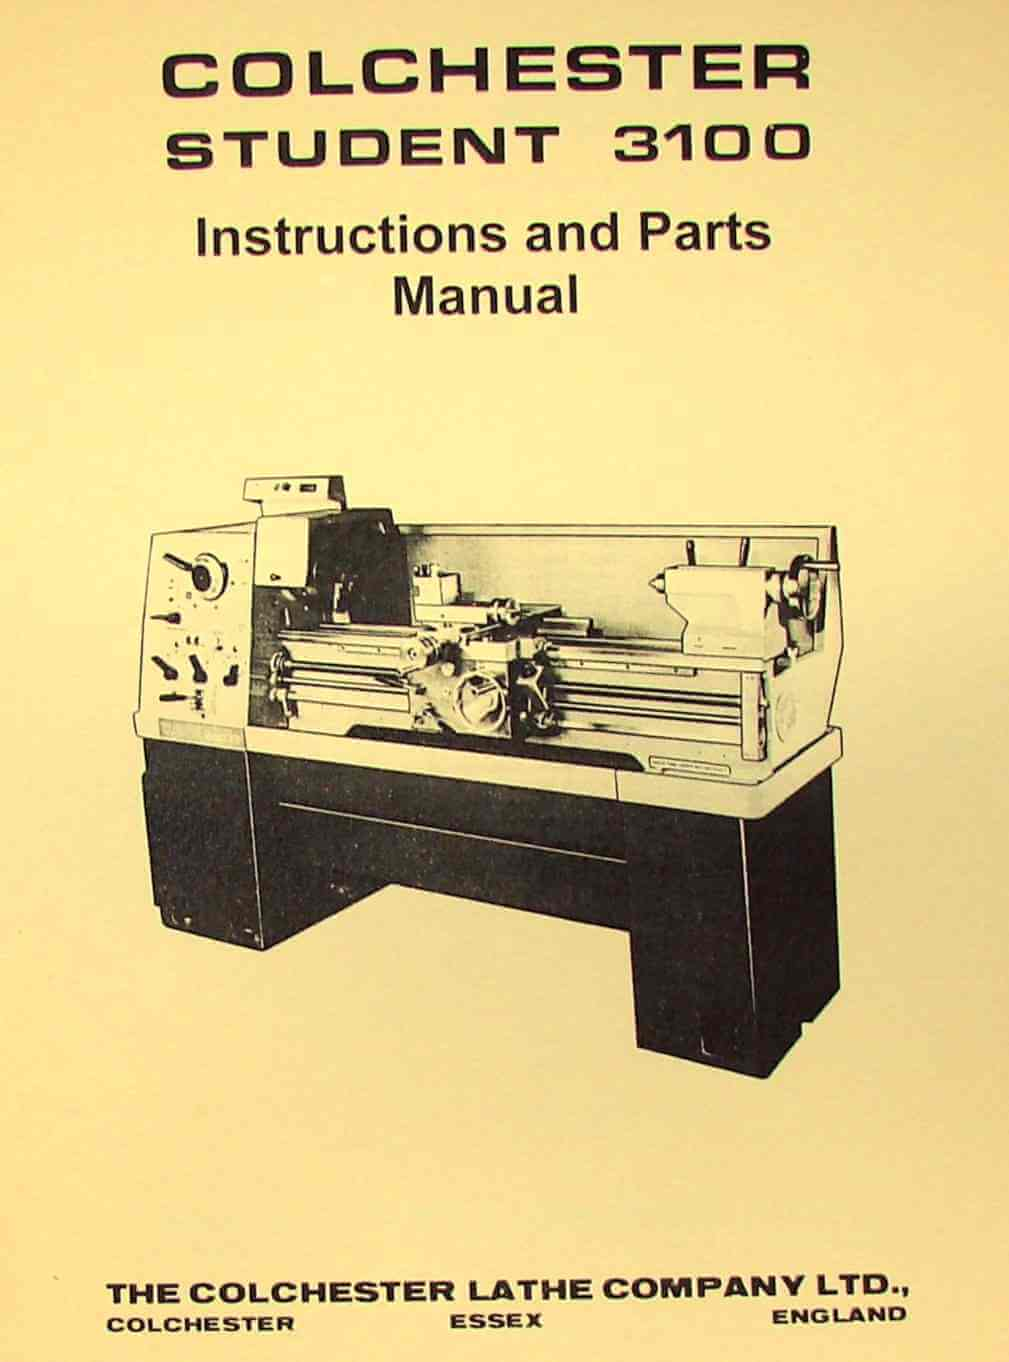 clausing colchester student 3100 13 lathe operator parts manual rh ozarktoolmanuals com